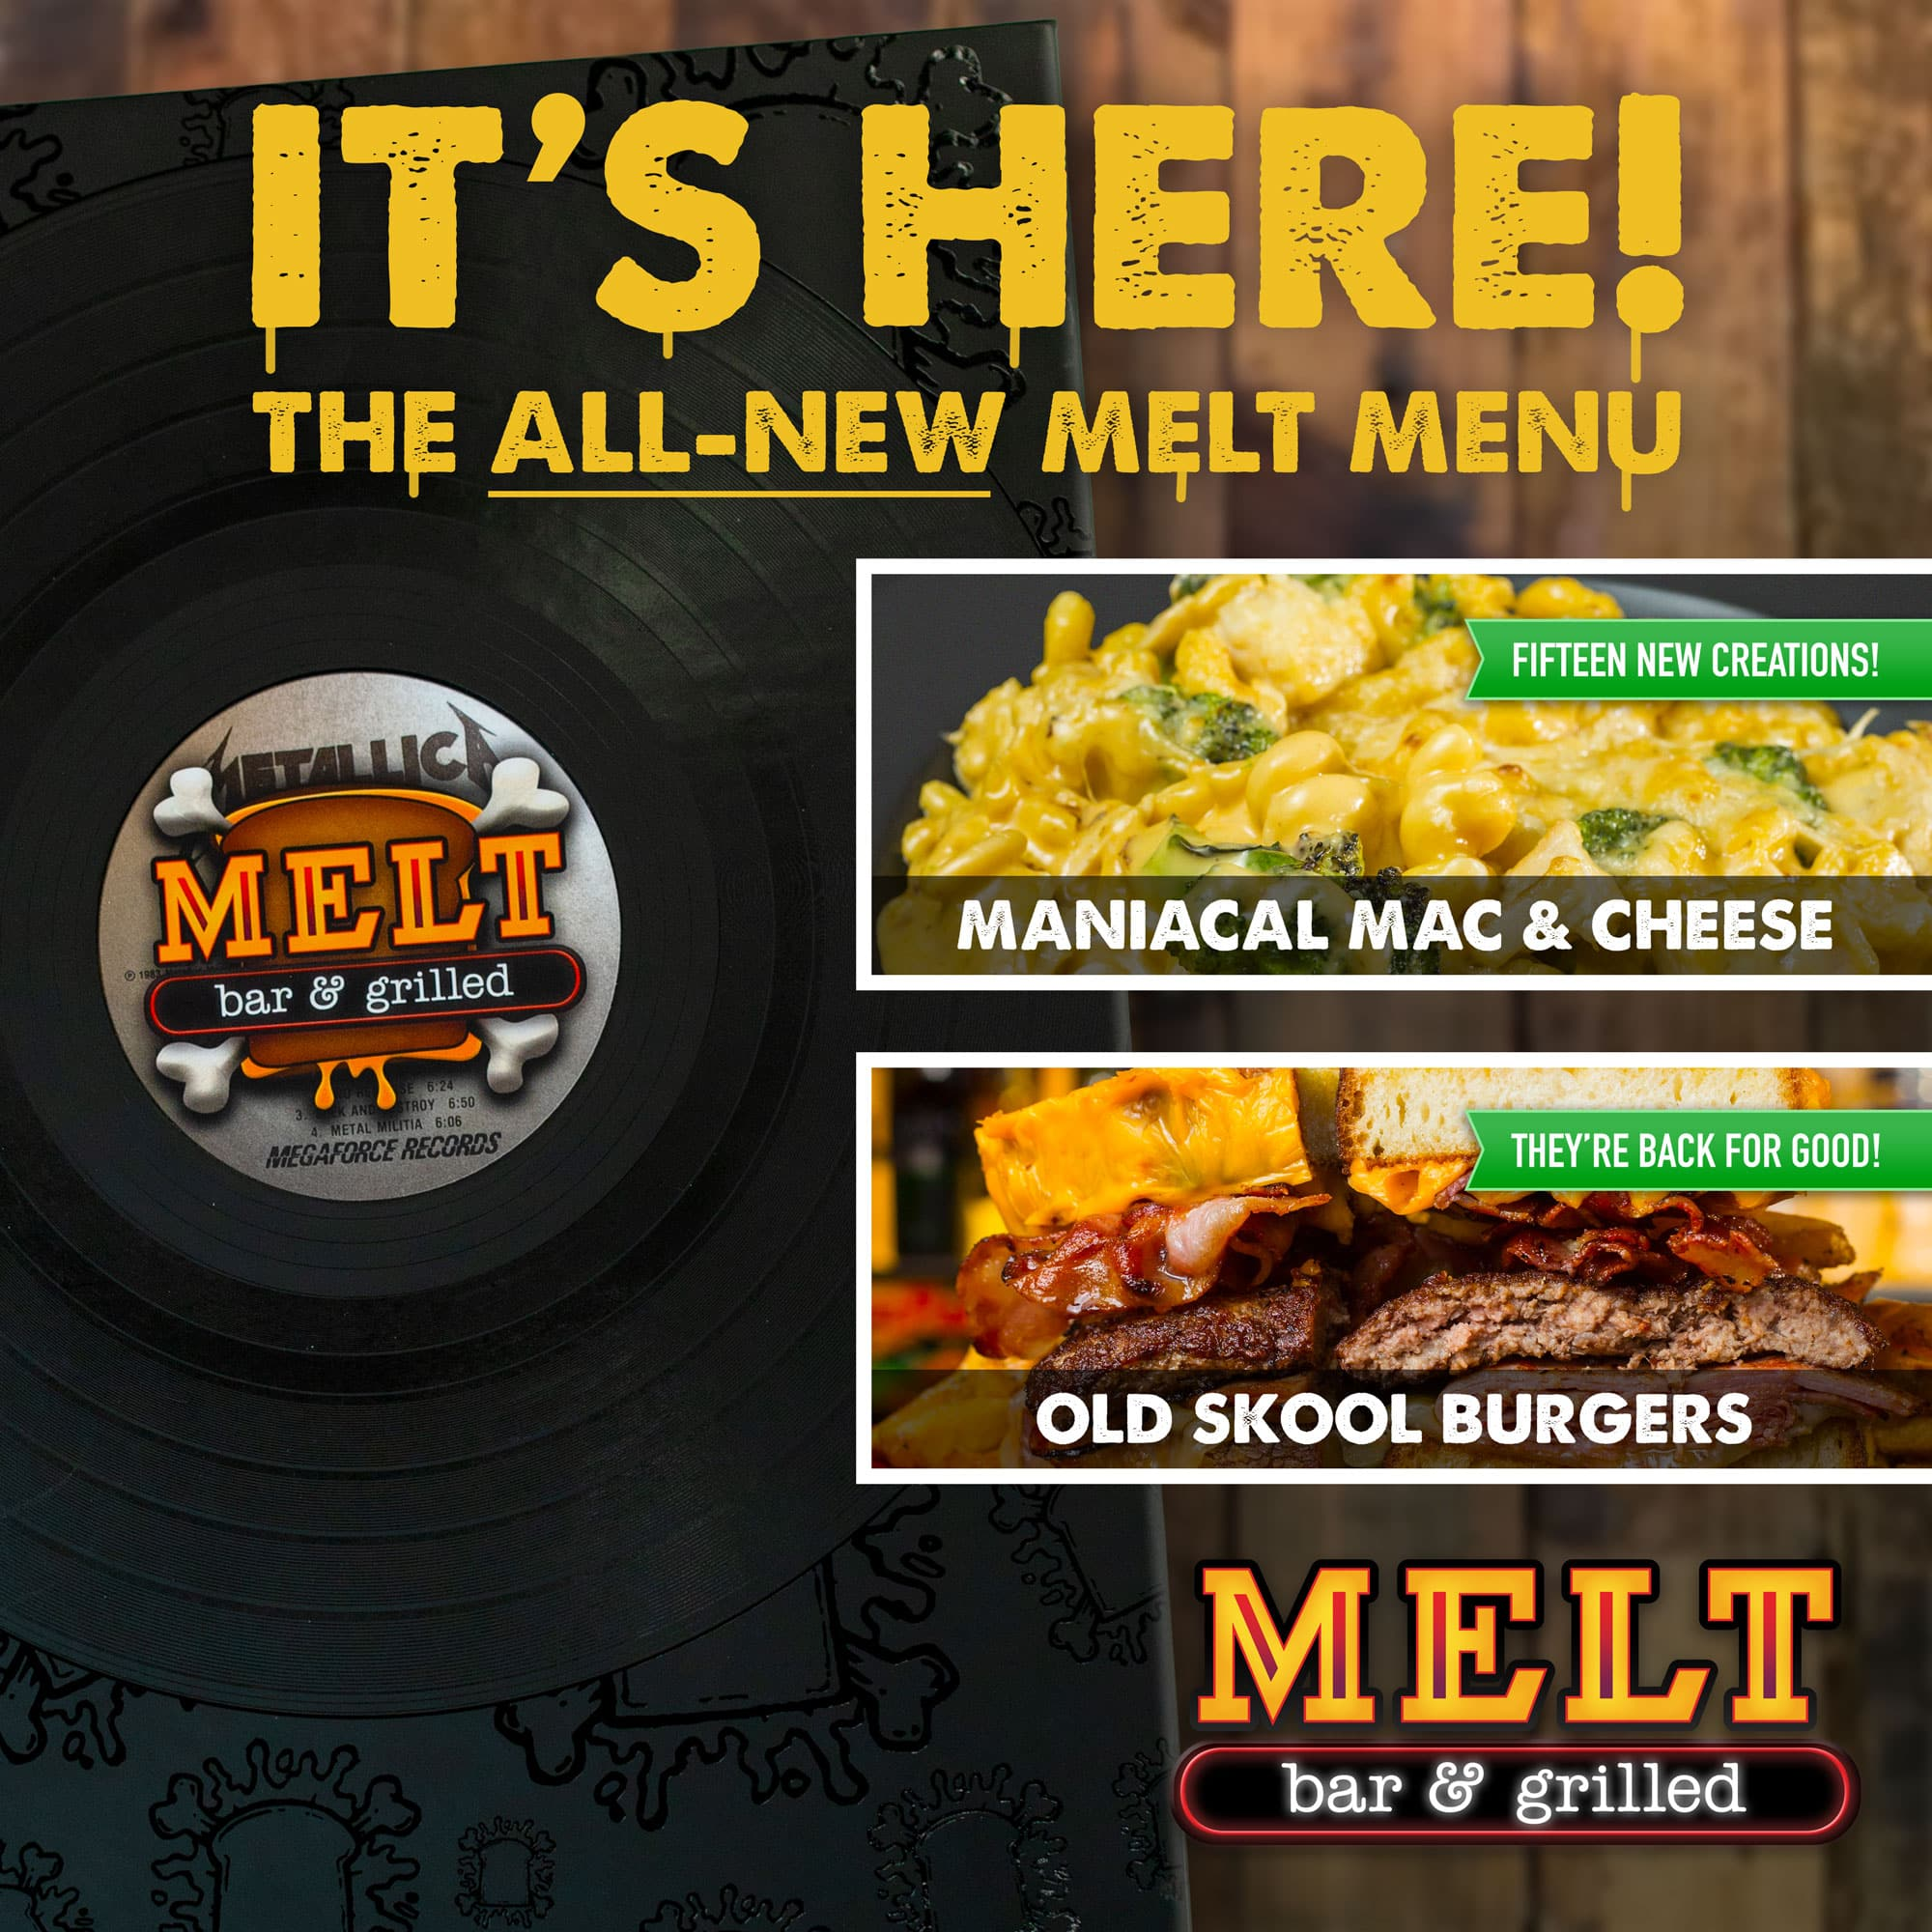 New Melt Bar and Grilled Menu Launches October 1st!